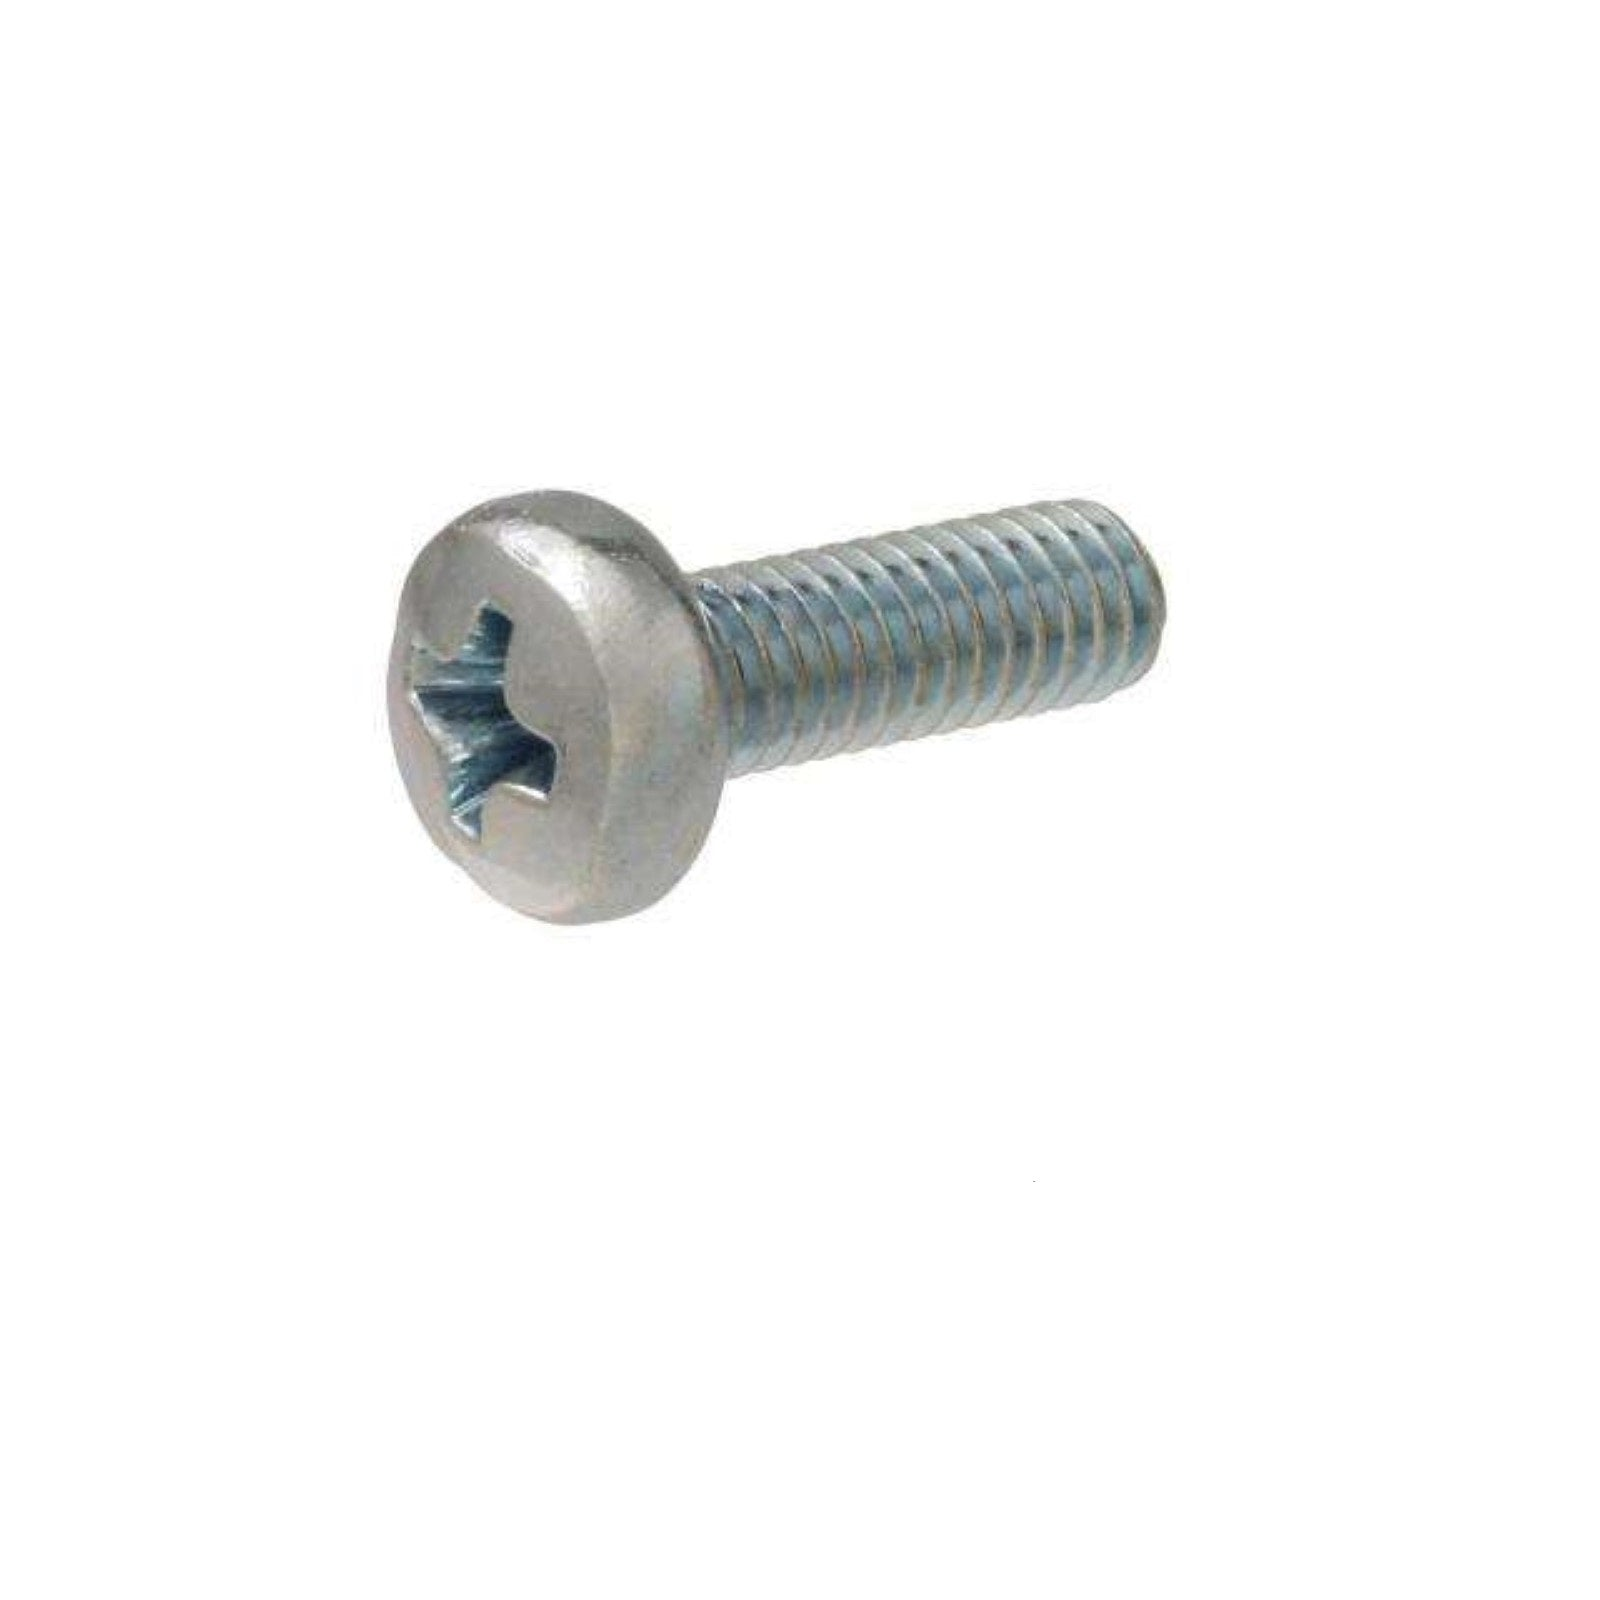 M4 x 12mm Screw - Coffee Addicts Canada